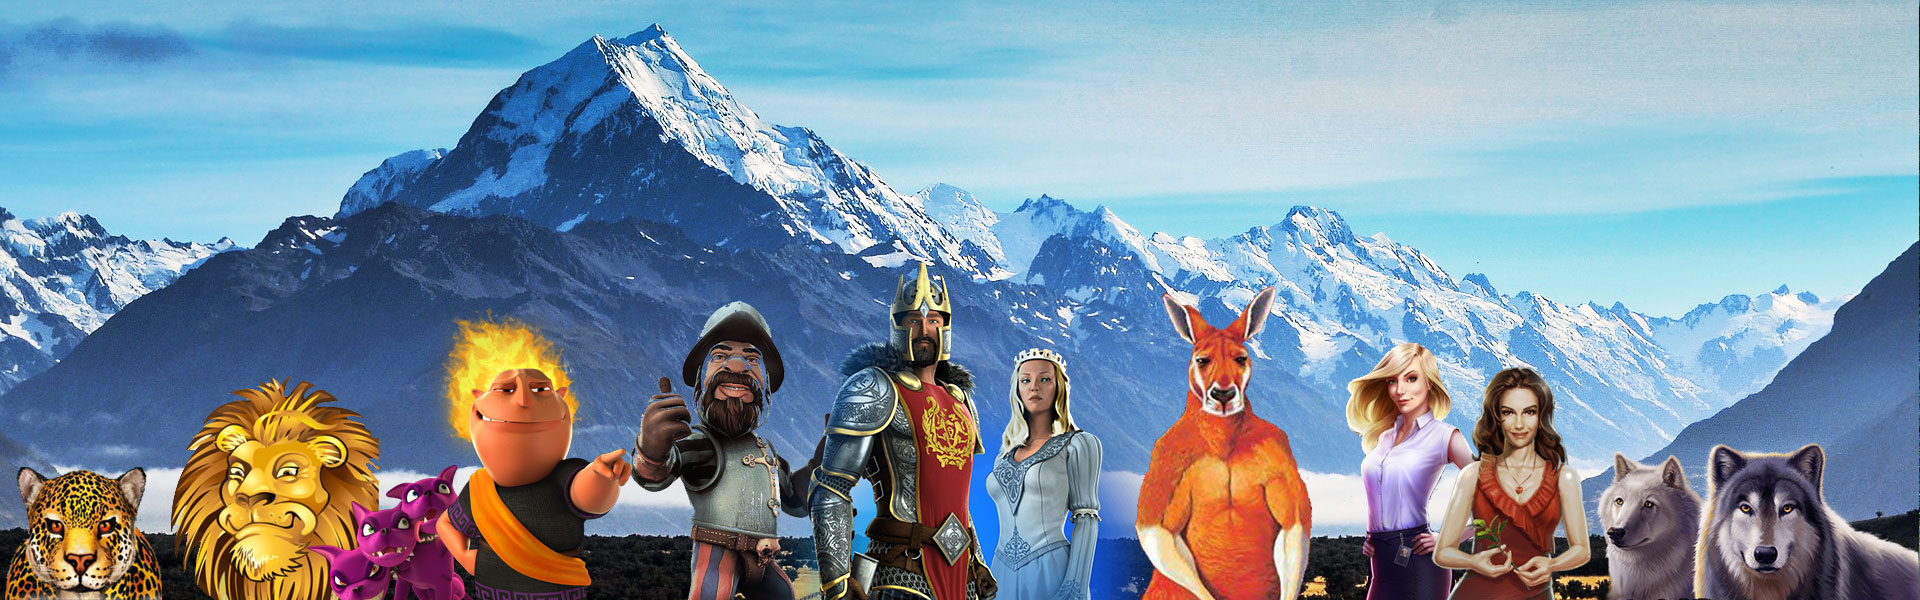 NZ online slot characters in teh New Zealand mountains